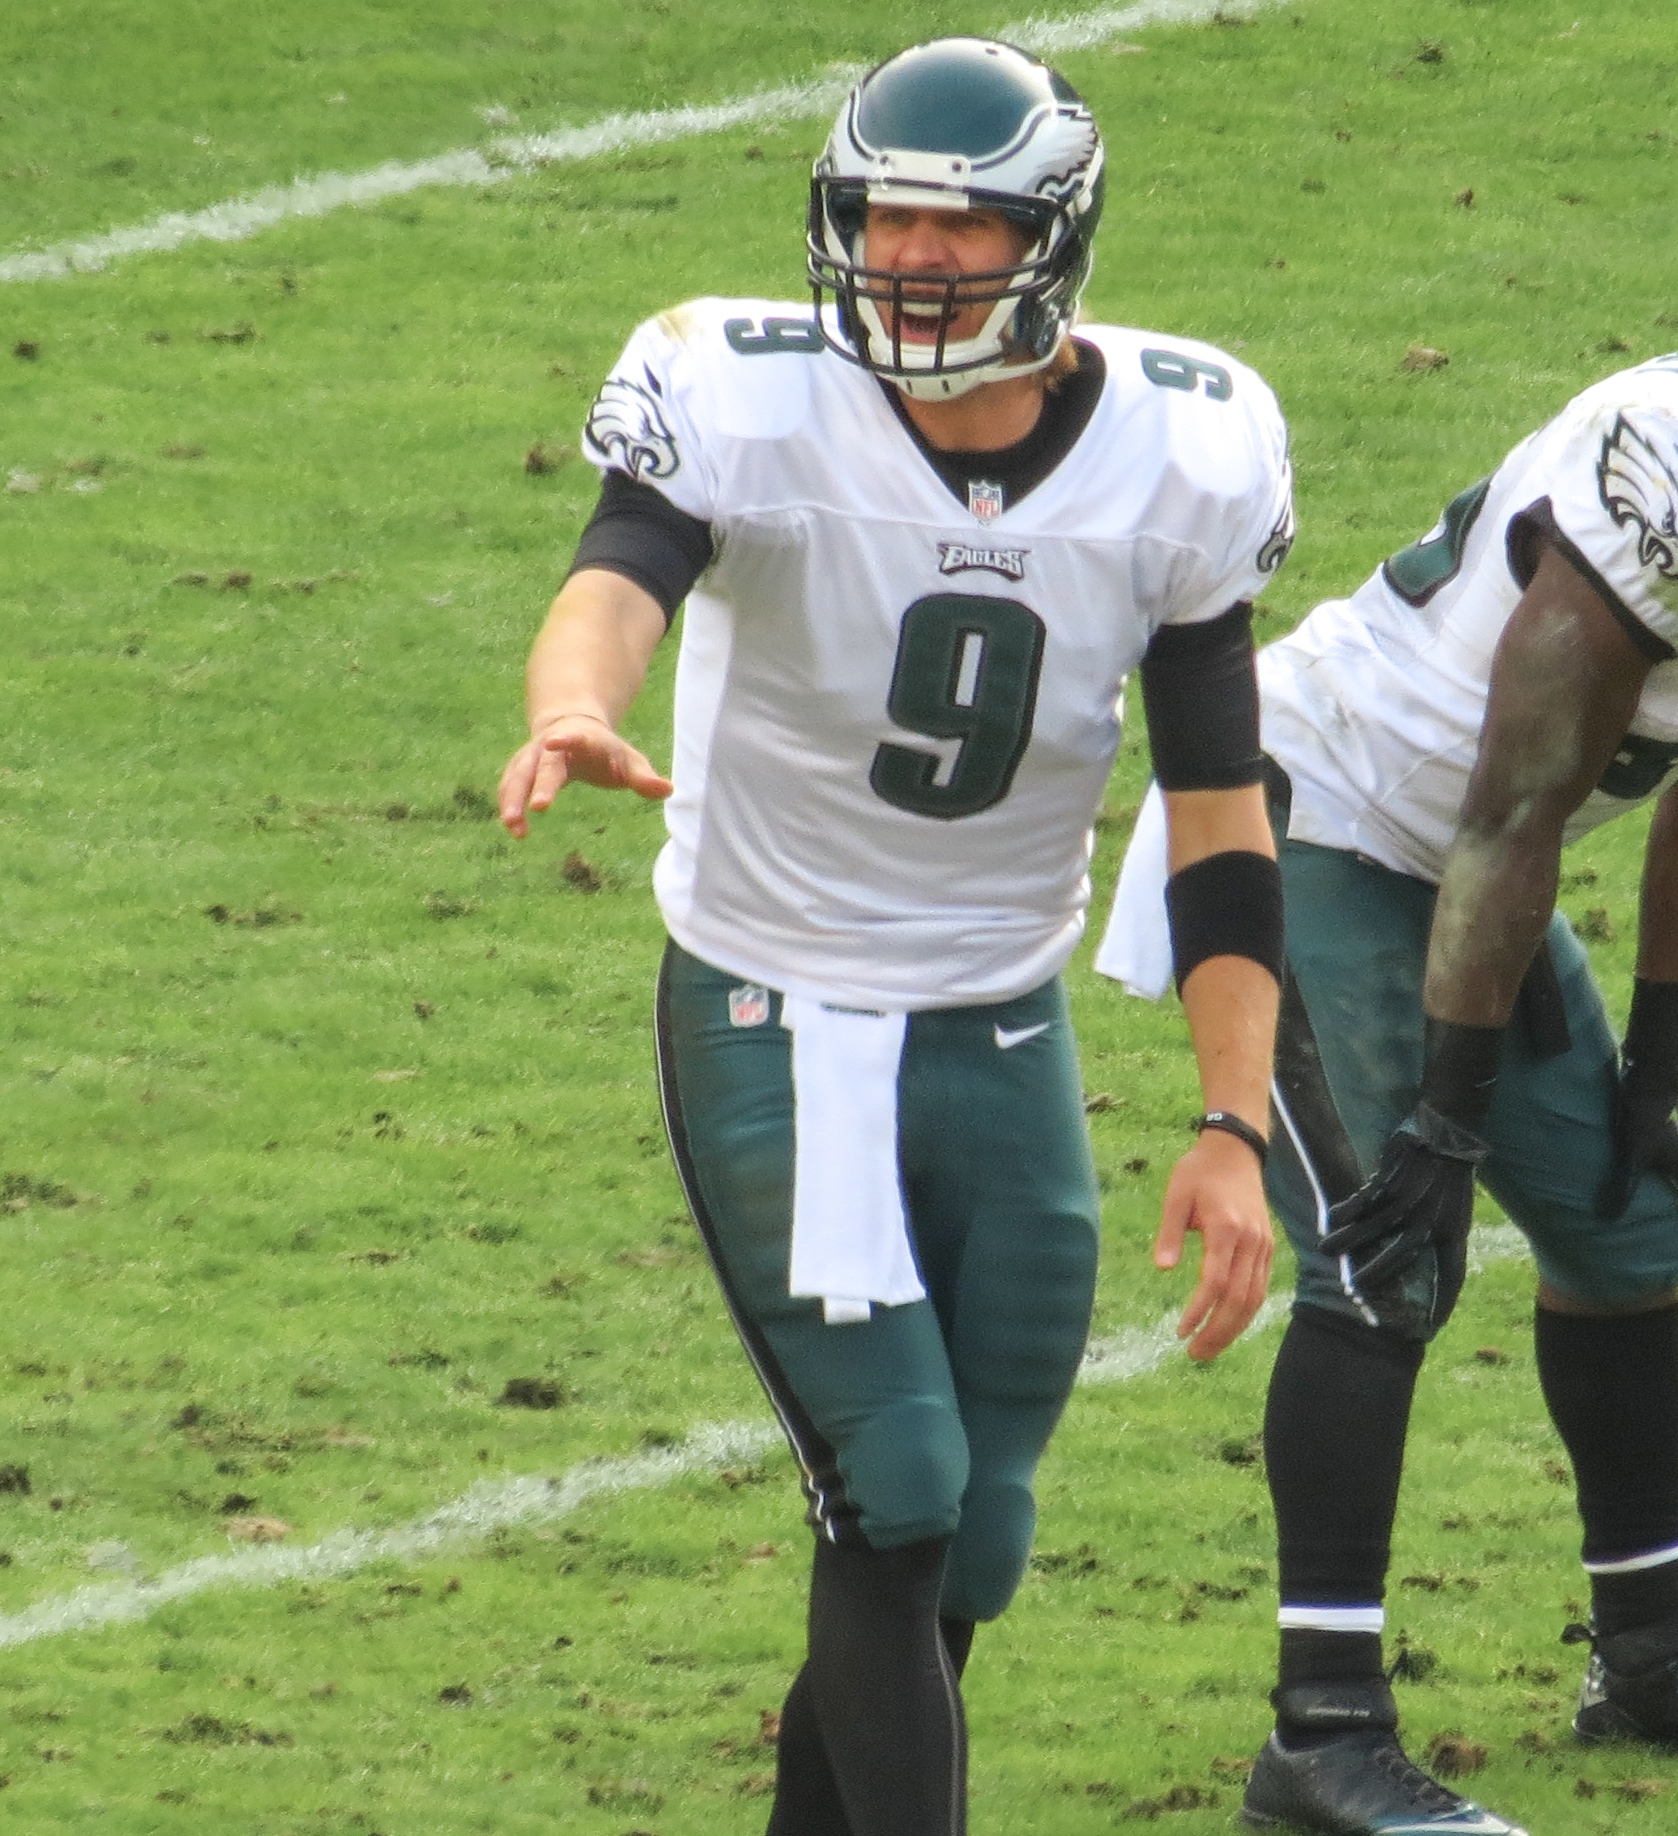 nick_foles_calling_play_in_2012